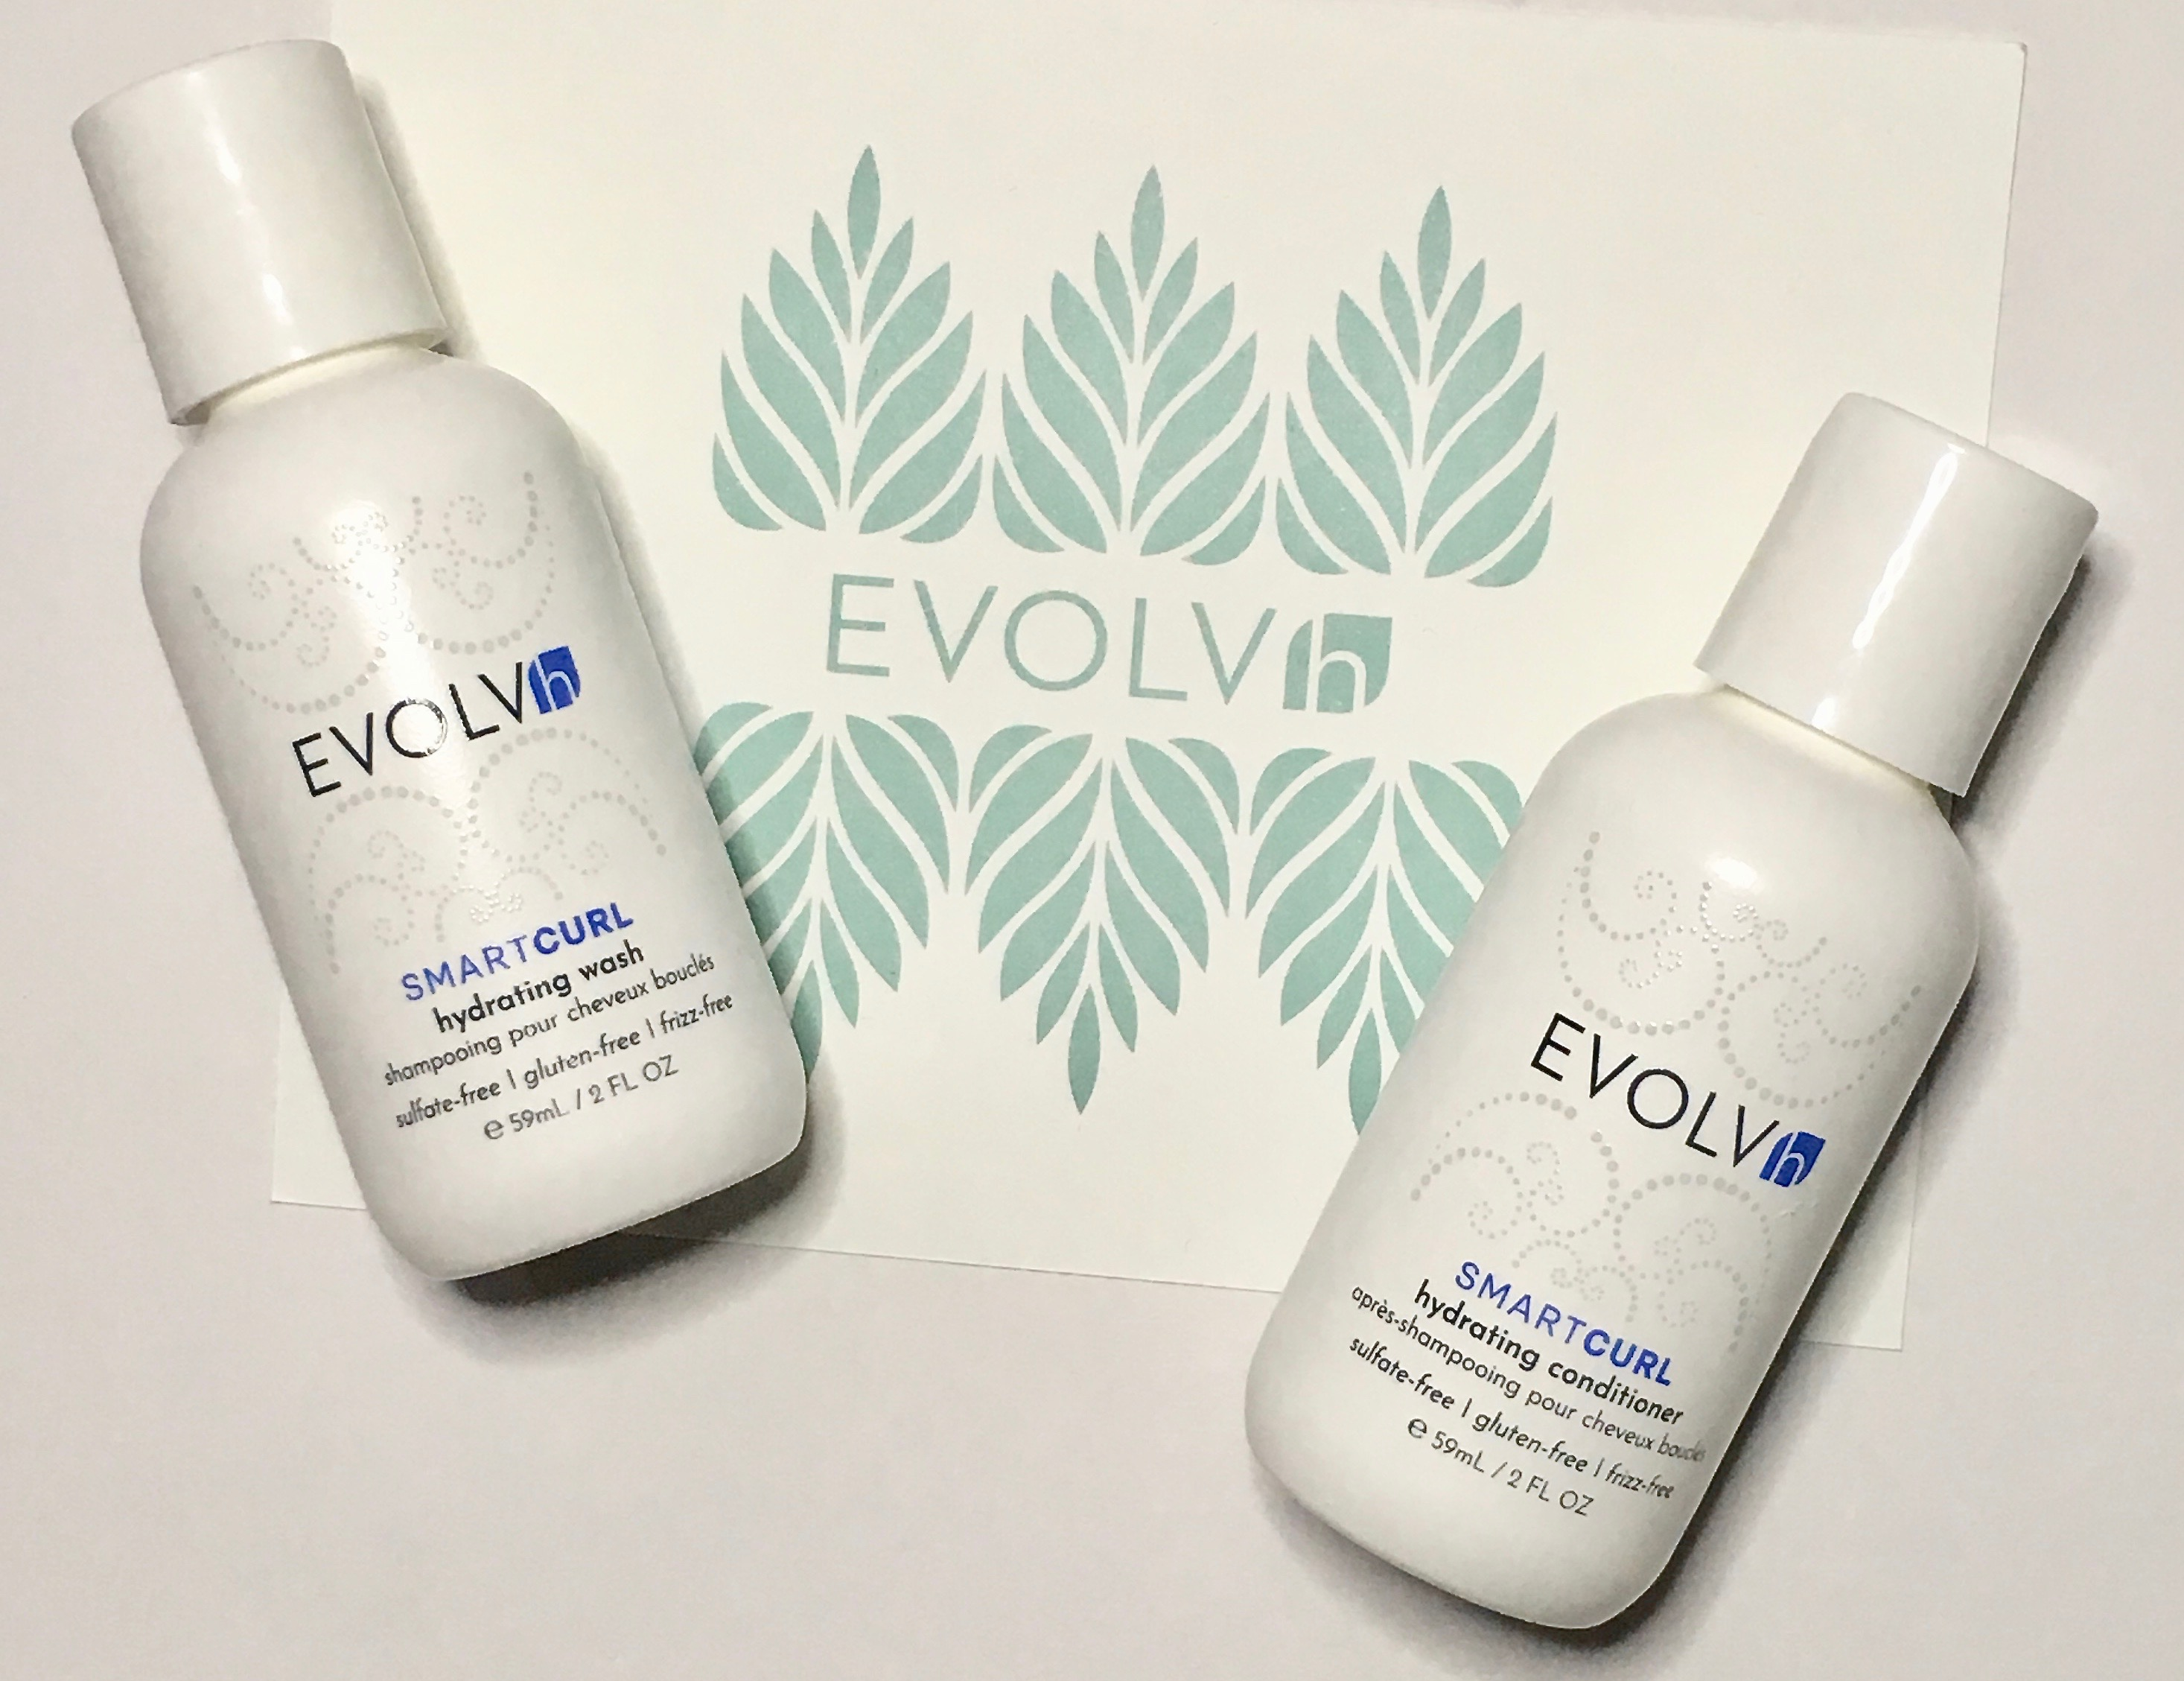 EVOLVh Love Your Curls Discovery Kit - SmartCurl Hydrating Wash & Conditioner